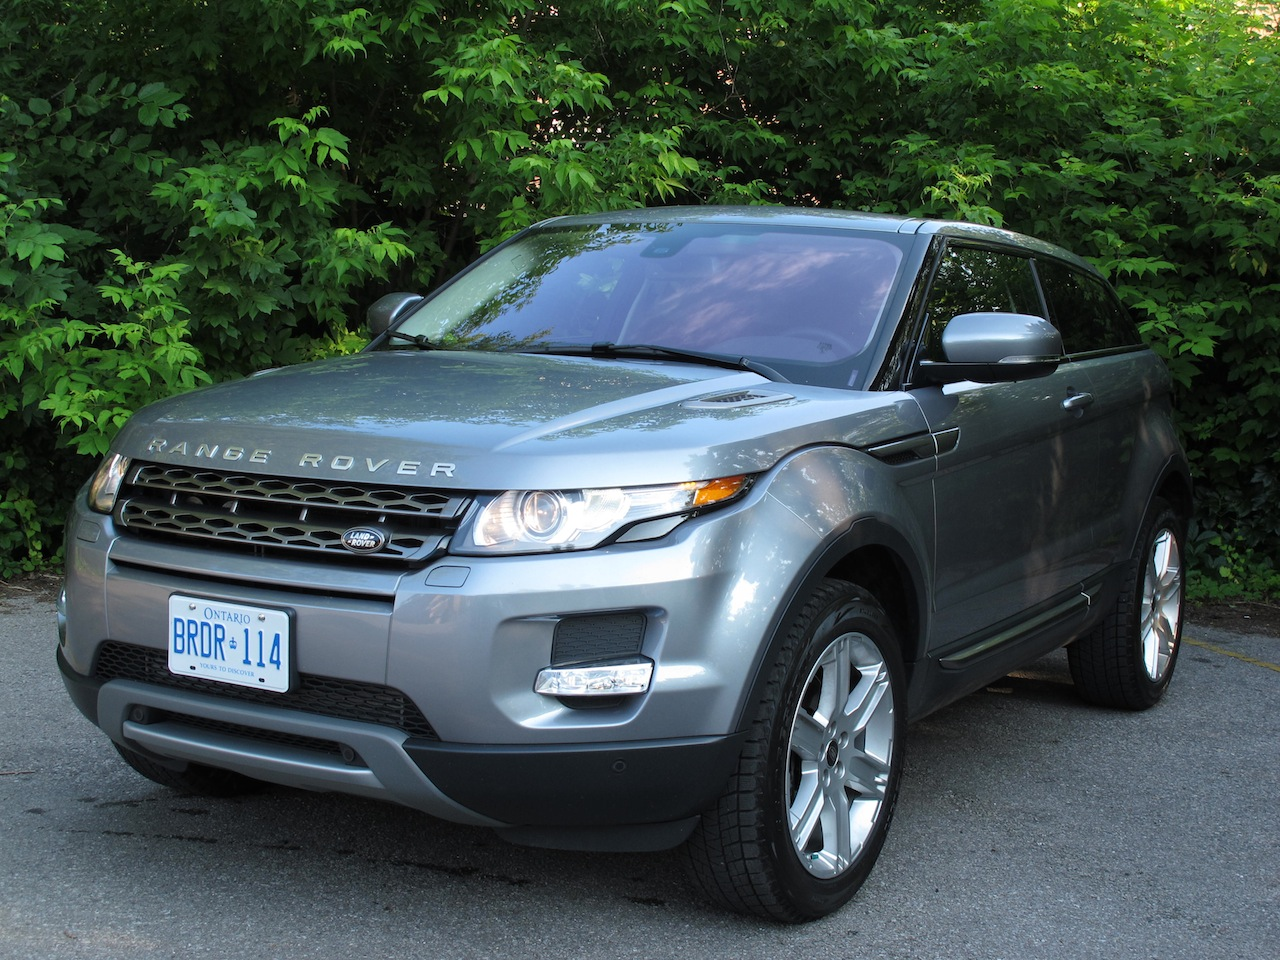 2013 range rover evoque coupe review cars photos test drives and reviews canadian auto review. Black Bedroom Furniture Sets. Home Design Ideas